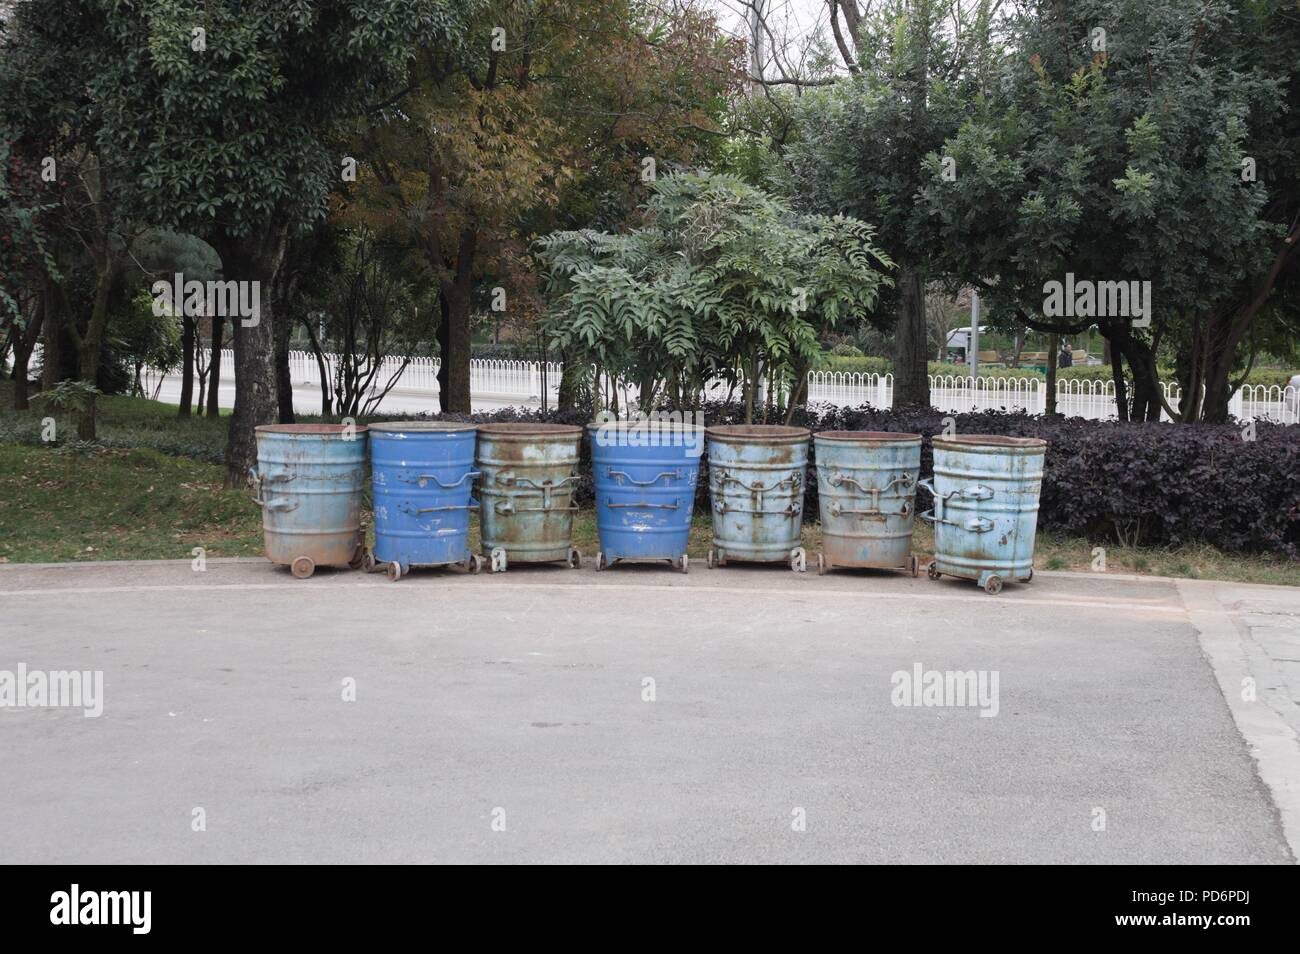 Trash cans lined up (Kunming, Yunnan, China) - Stock Image